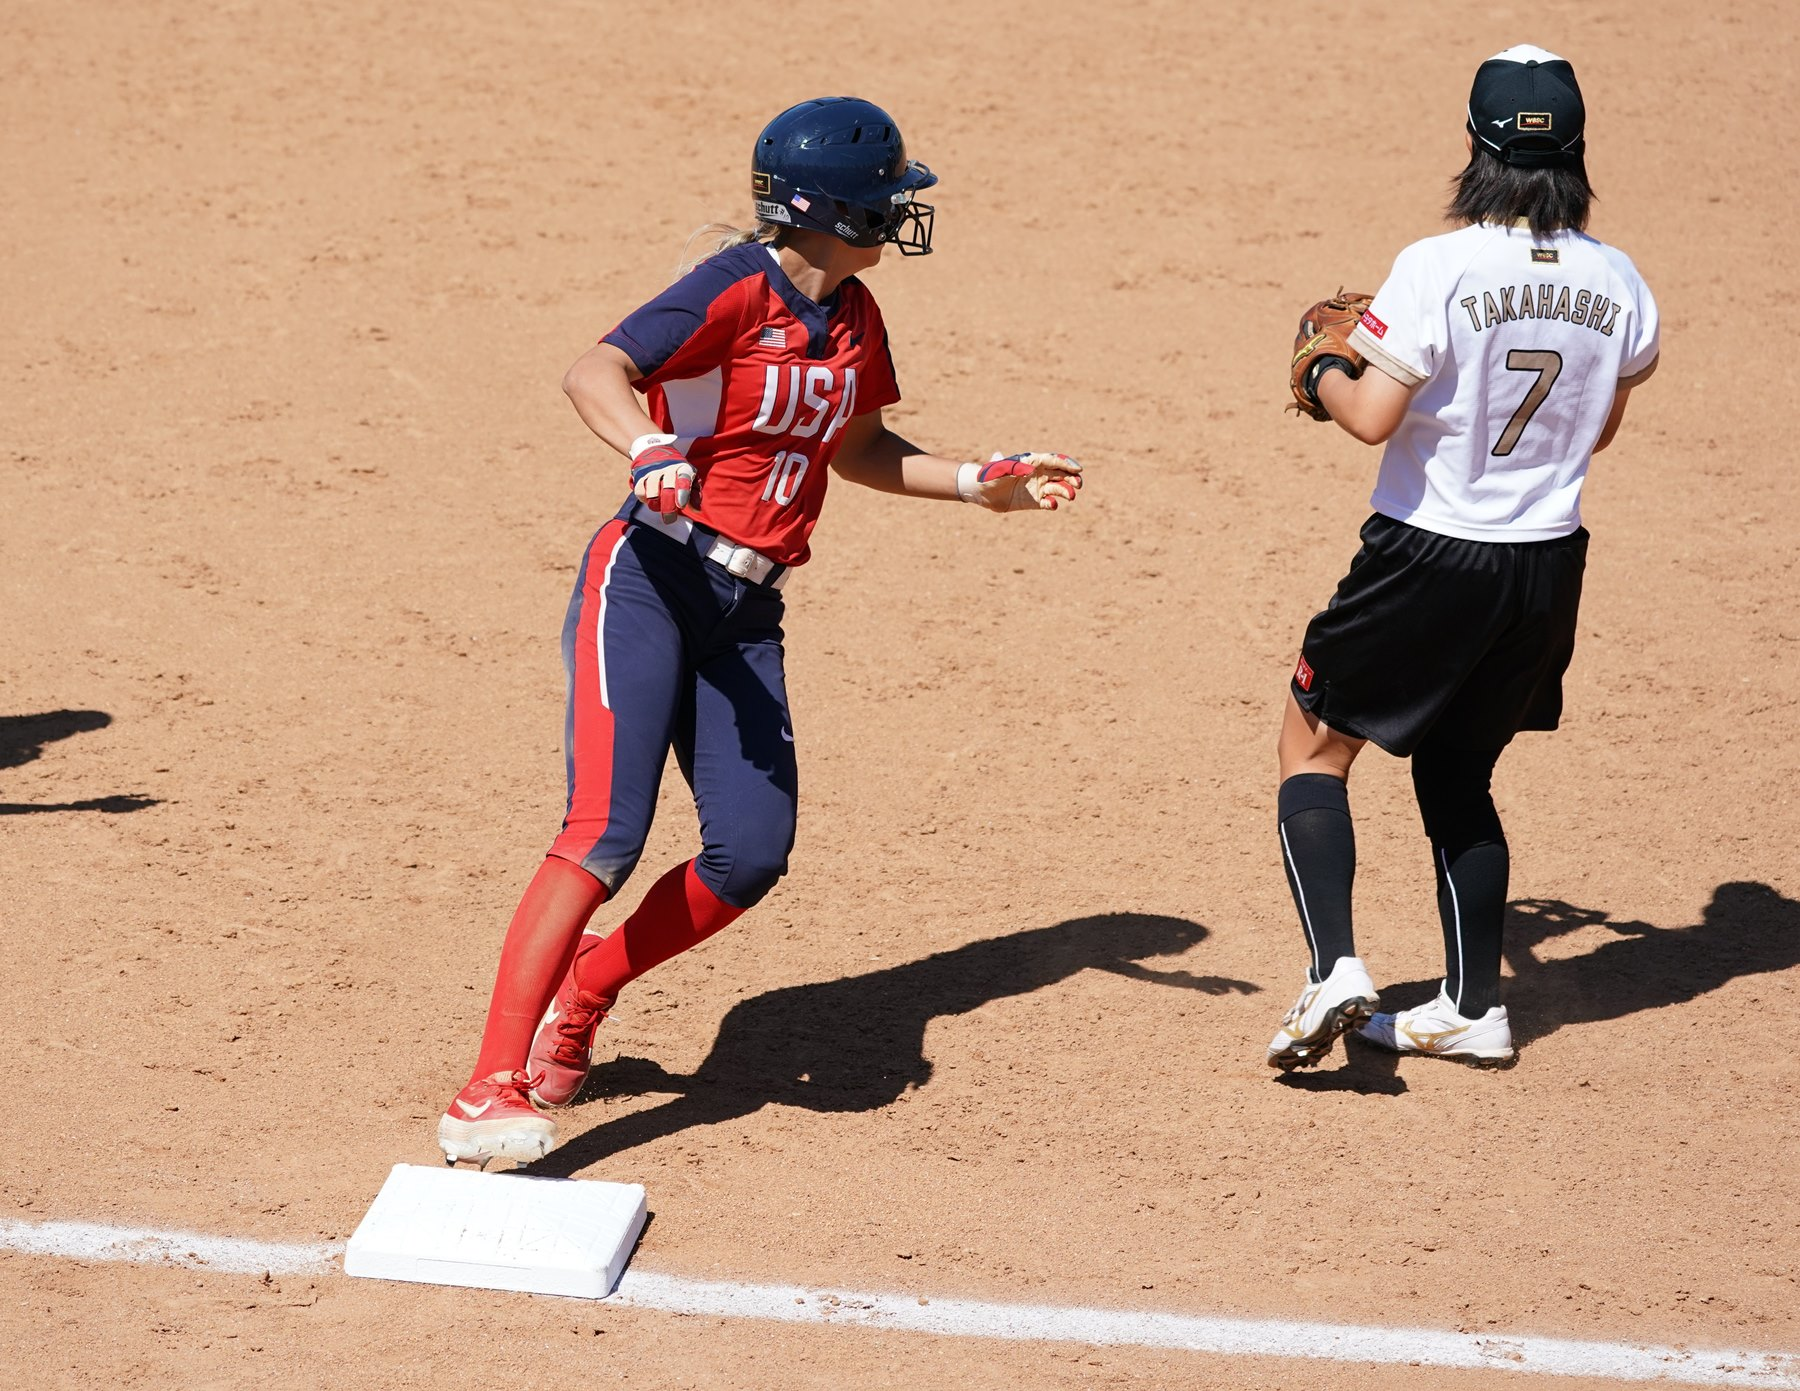 Jayda Coleman standing at third with Mahiro Takahashi waiting for the throw